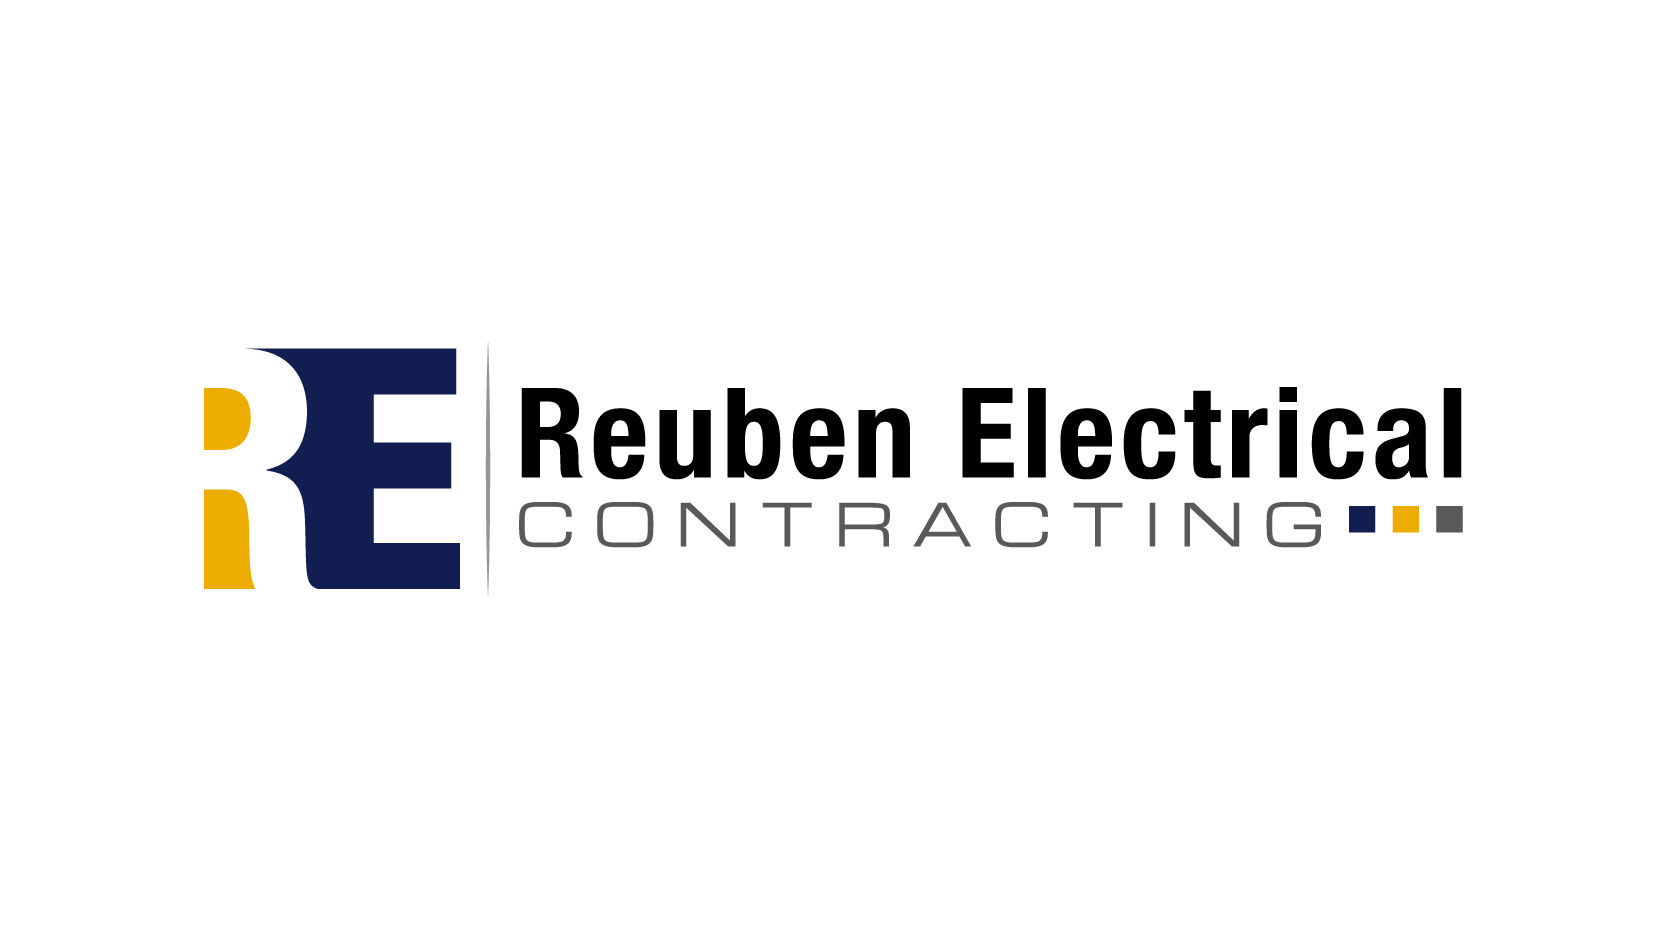 reuben electrical contracting